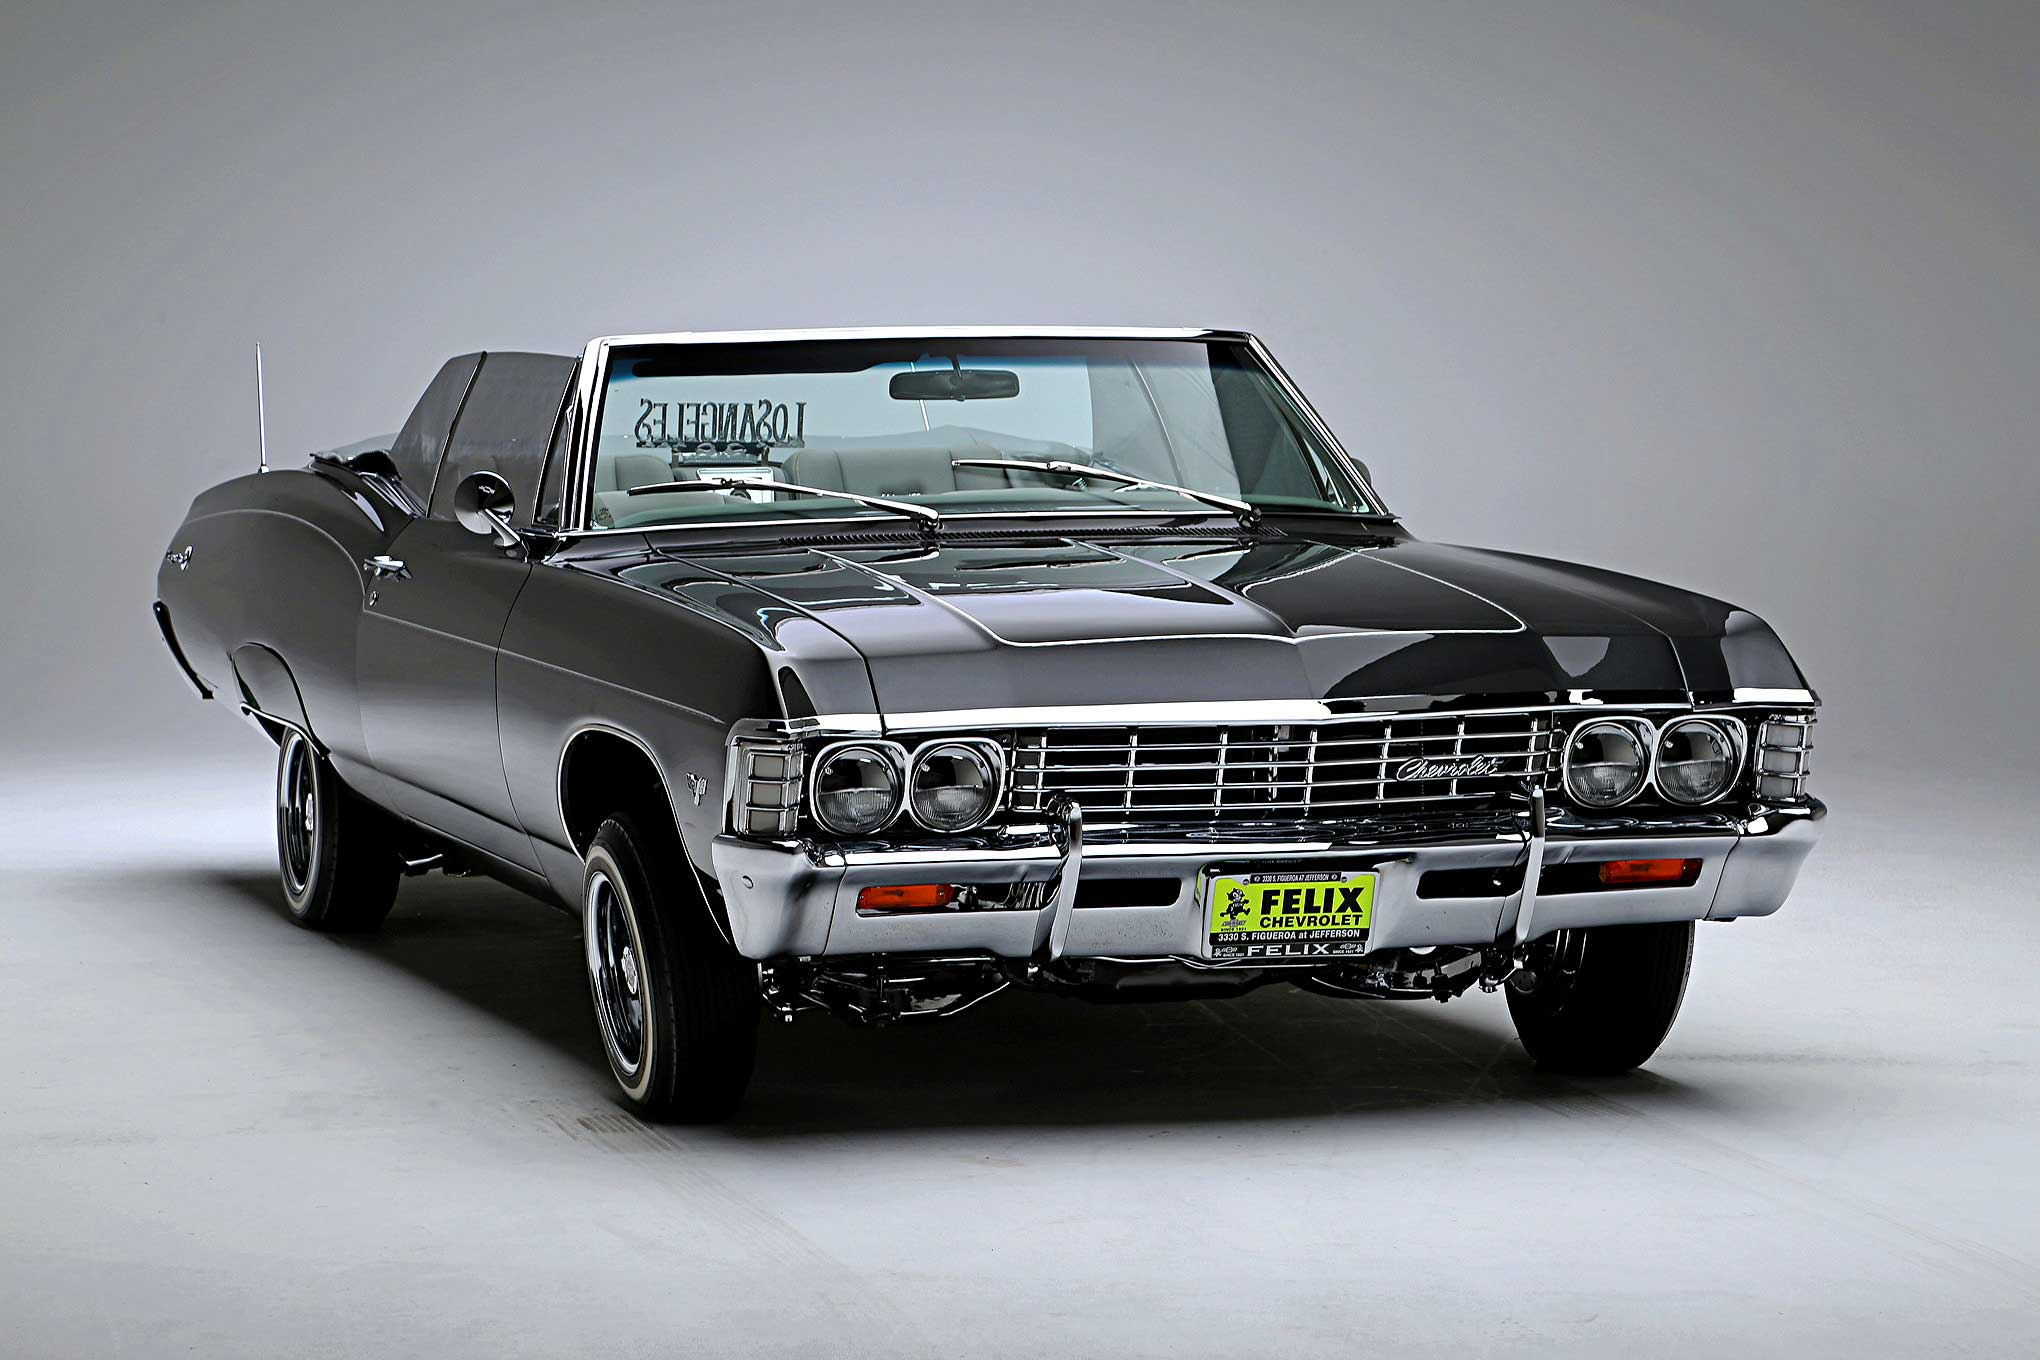 1967 Chevrolet Impala Convertible A Poor Man S Dream